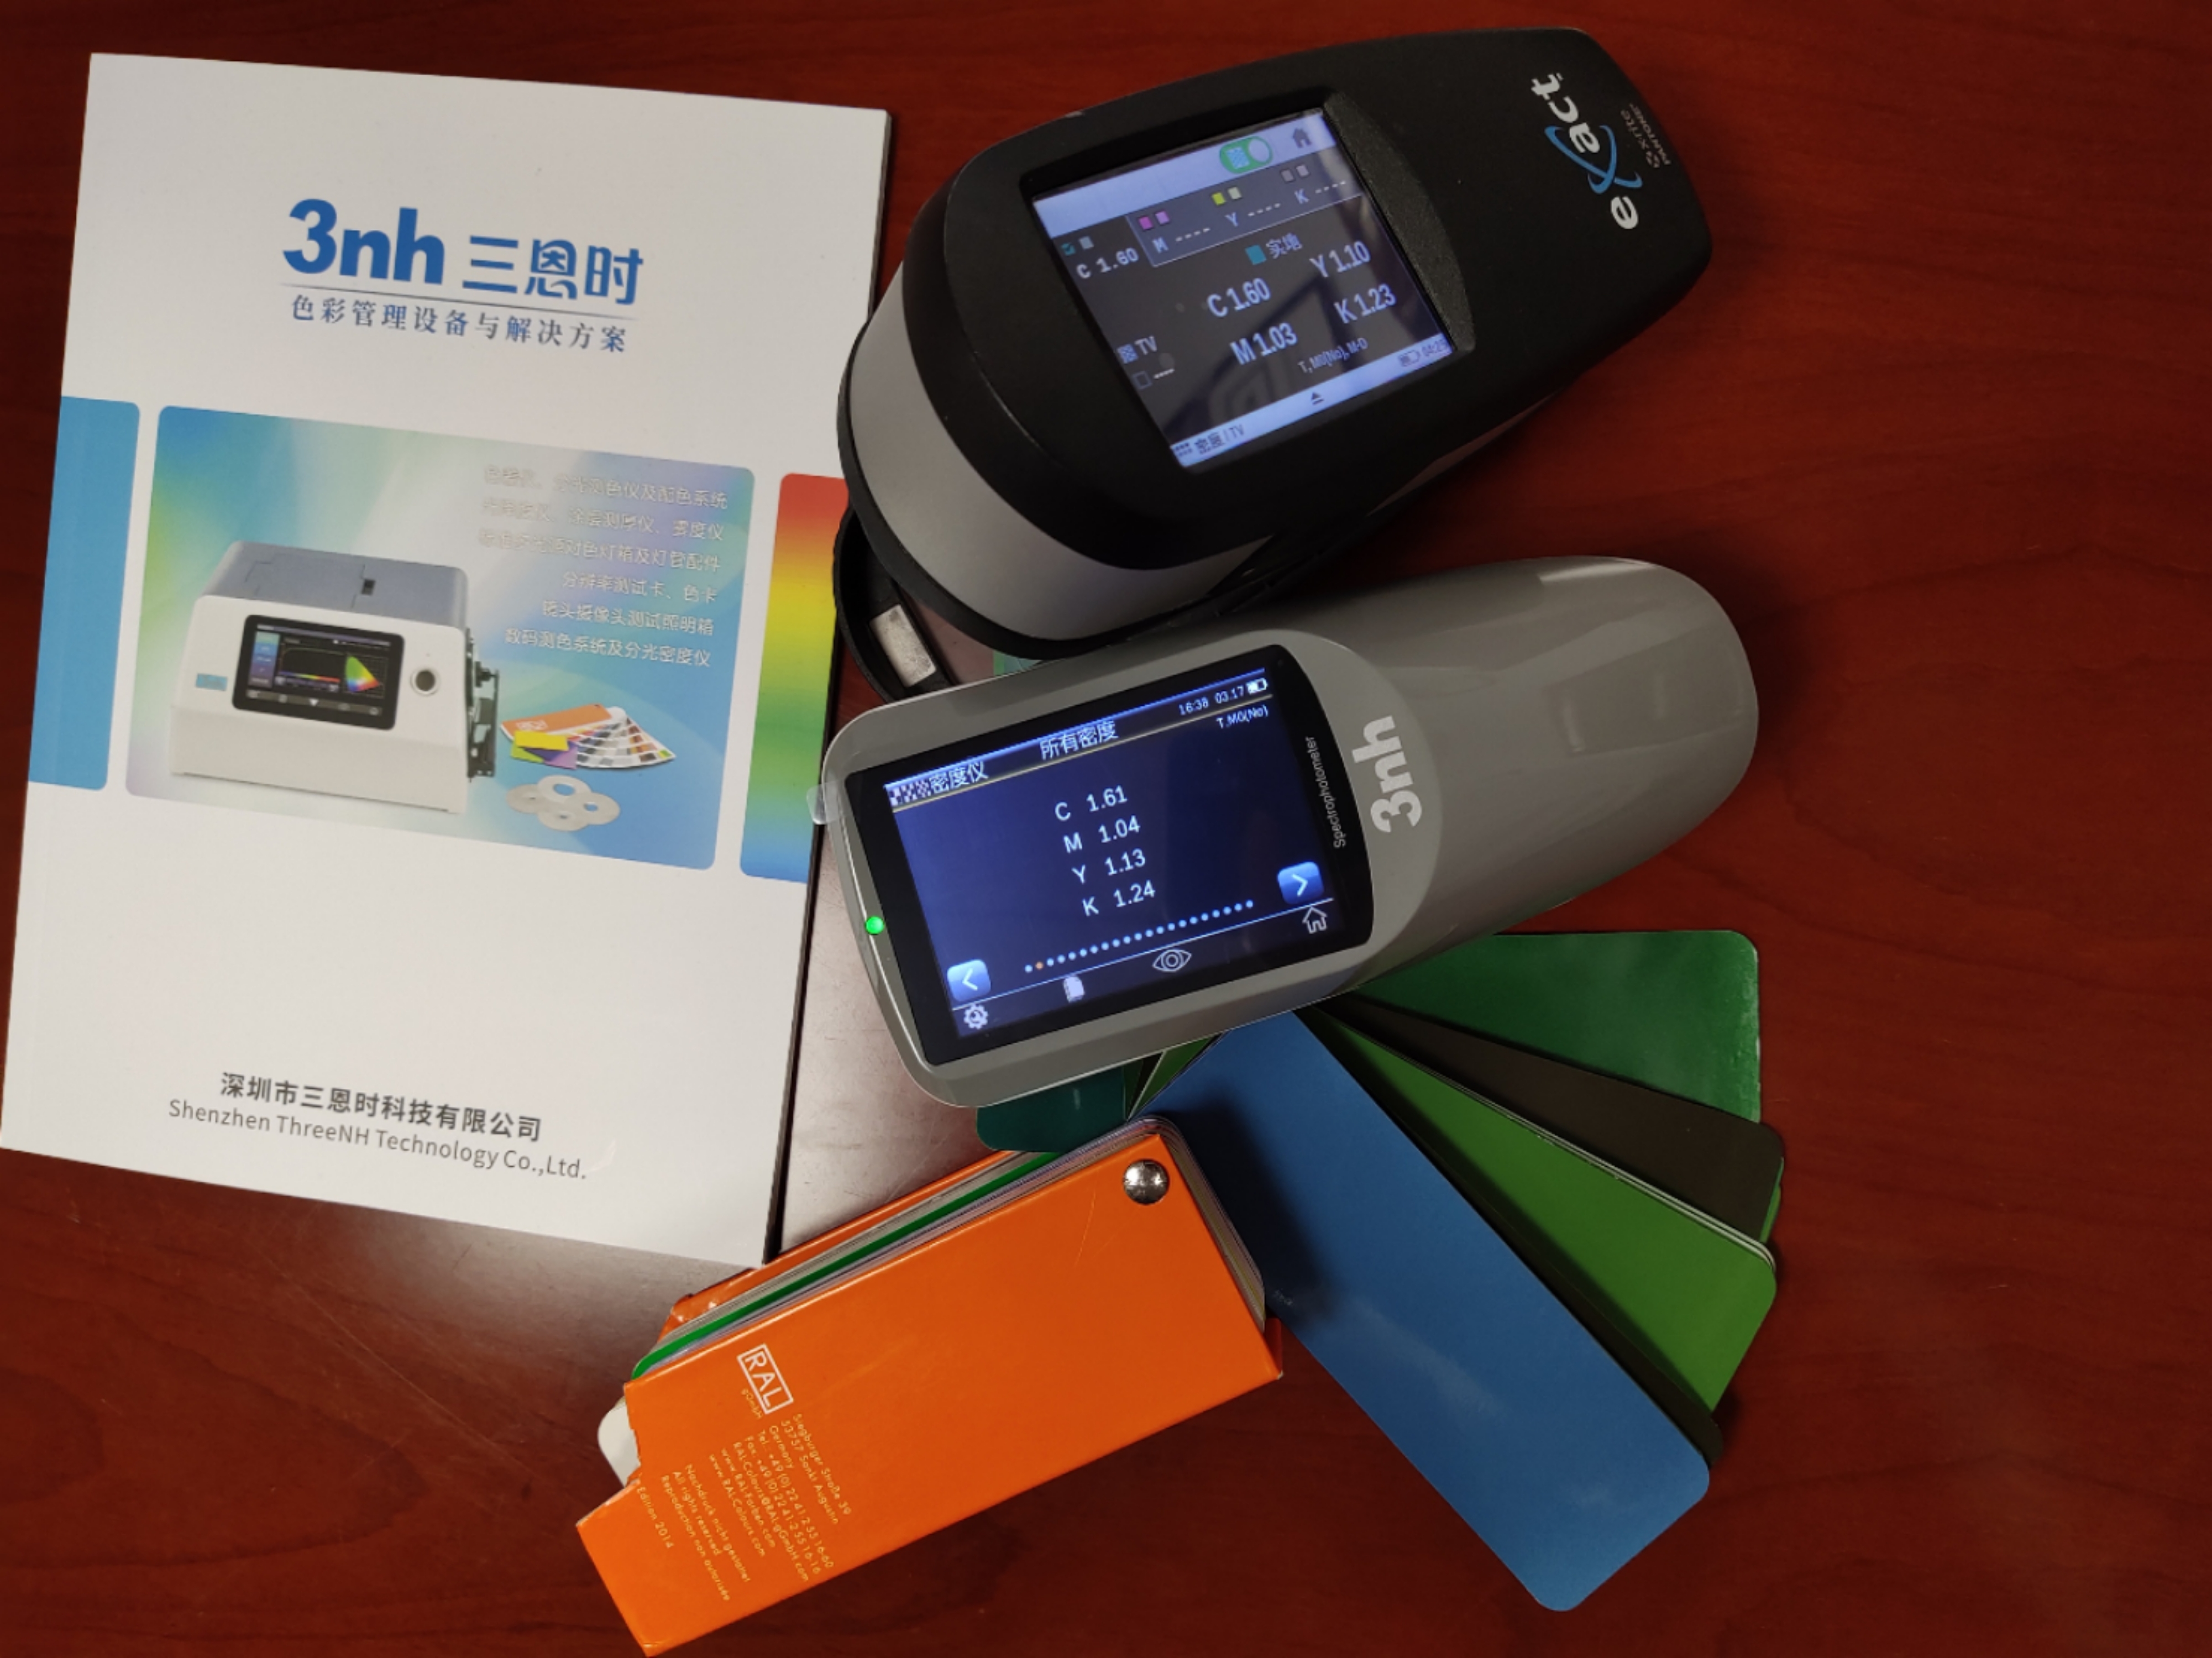 3nh YD5010 Grating Spectrophotometer Densitometer CMYK LAB Color Difference Space with 45/0 for ink printing and Film Processing